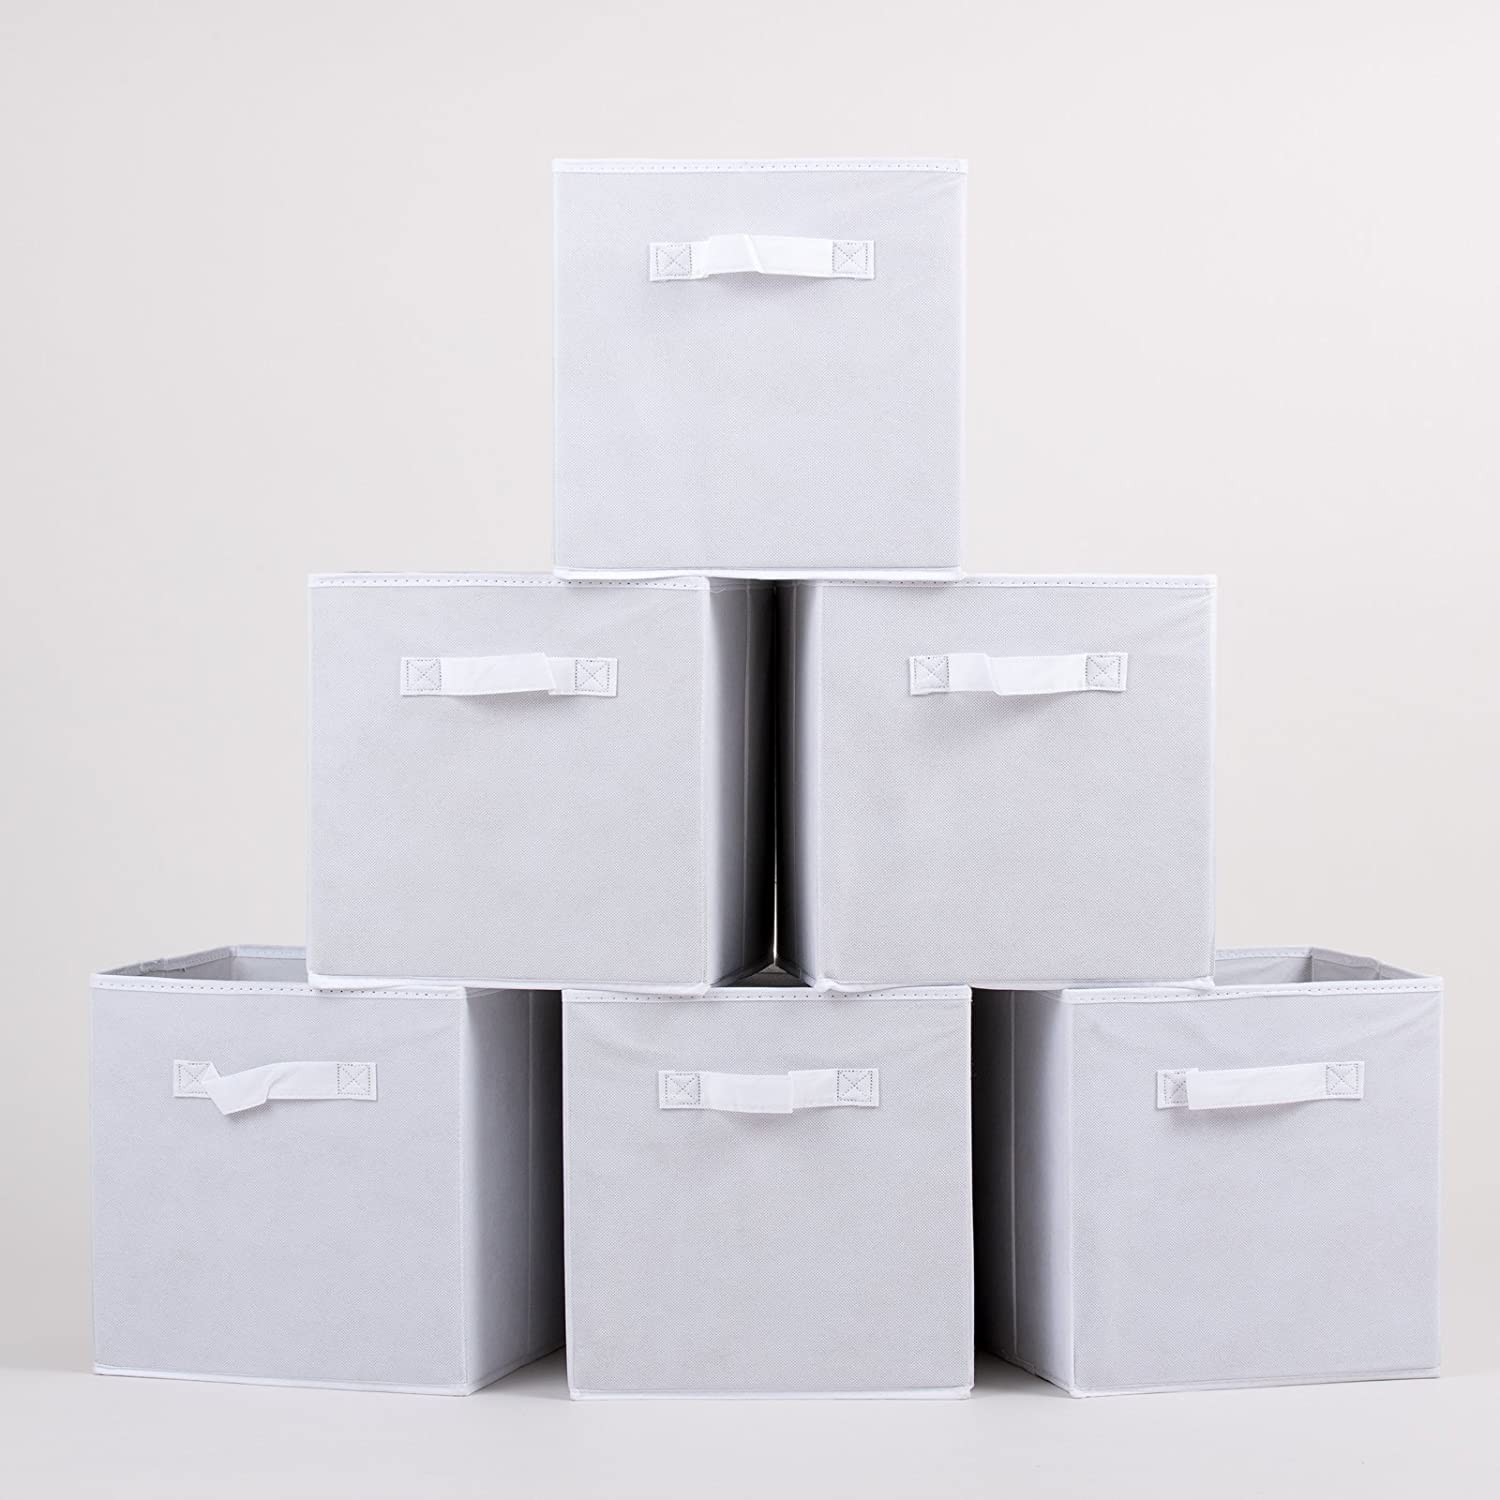 1 Click Buy Foldable Storage Cubes 11 x 11 Set of 6 Fabric Cube Storage Boxes Drawers Available in White, Grey and Black Handy Organiser Storage Bins Baskets White